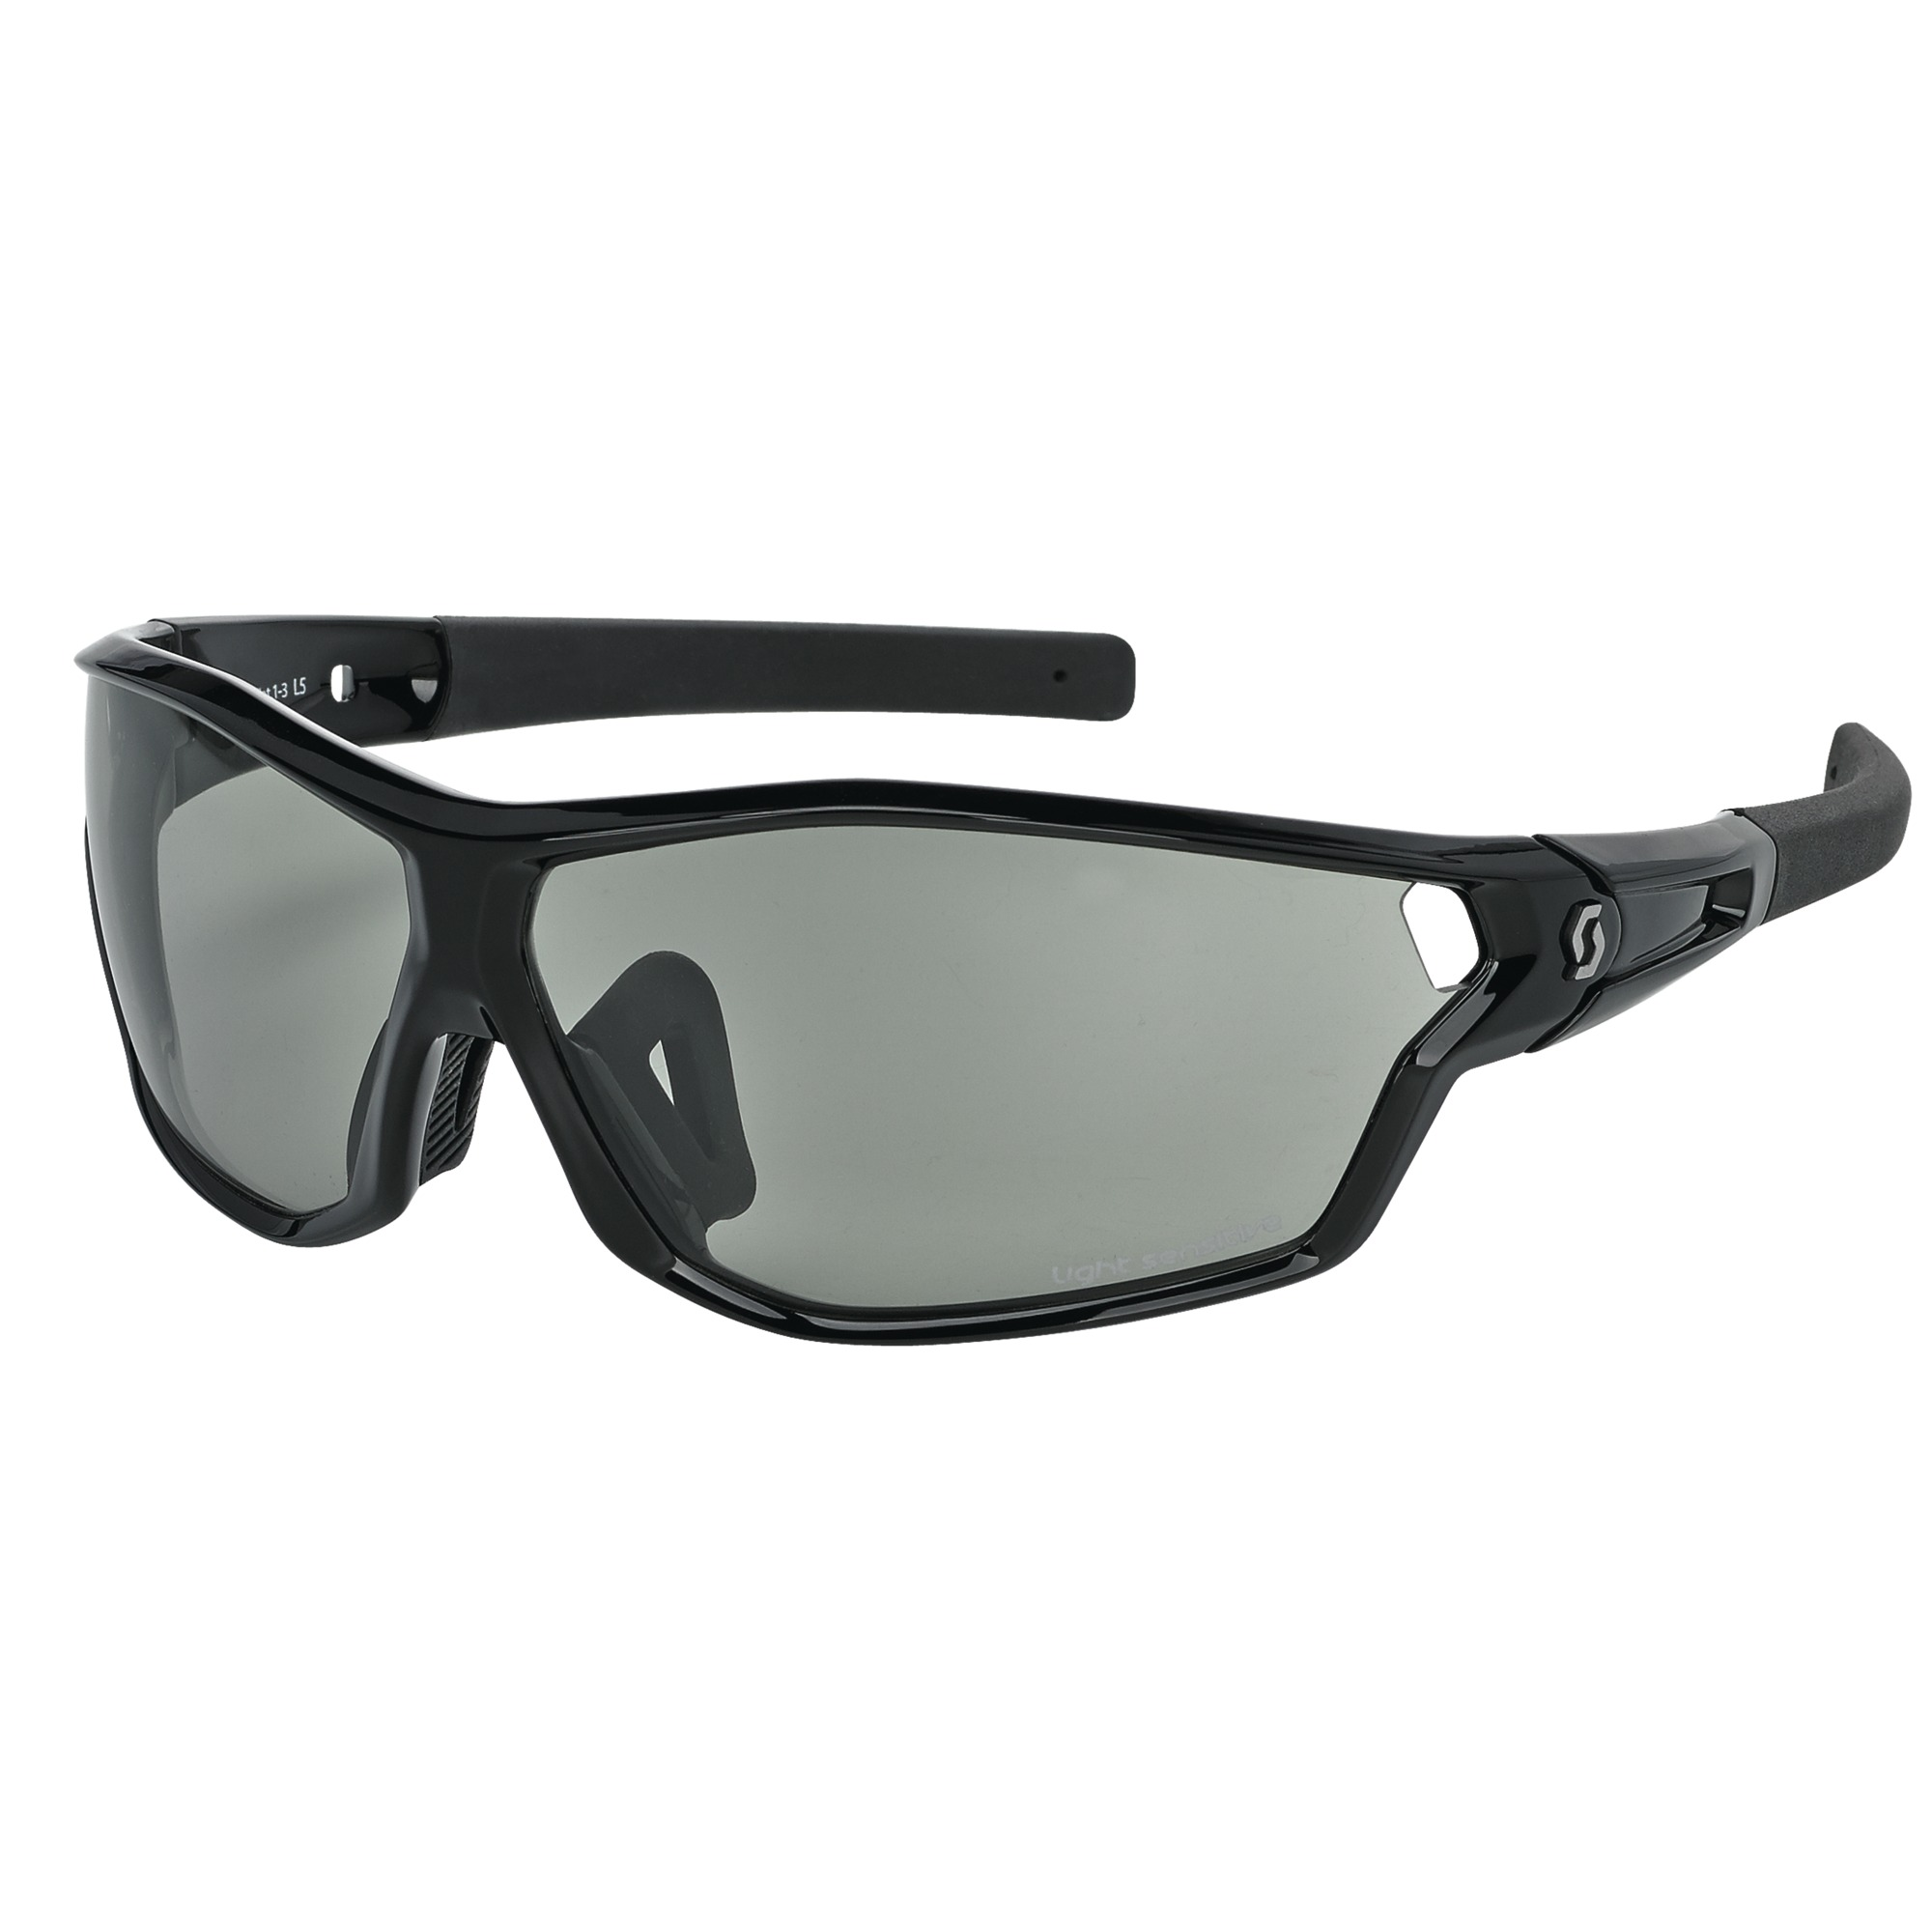 OCCHIALE SPORTIVO SCOTT LEAP FULL FRAME LS SUNGLASSES 235513 black glossy grey.jpg